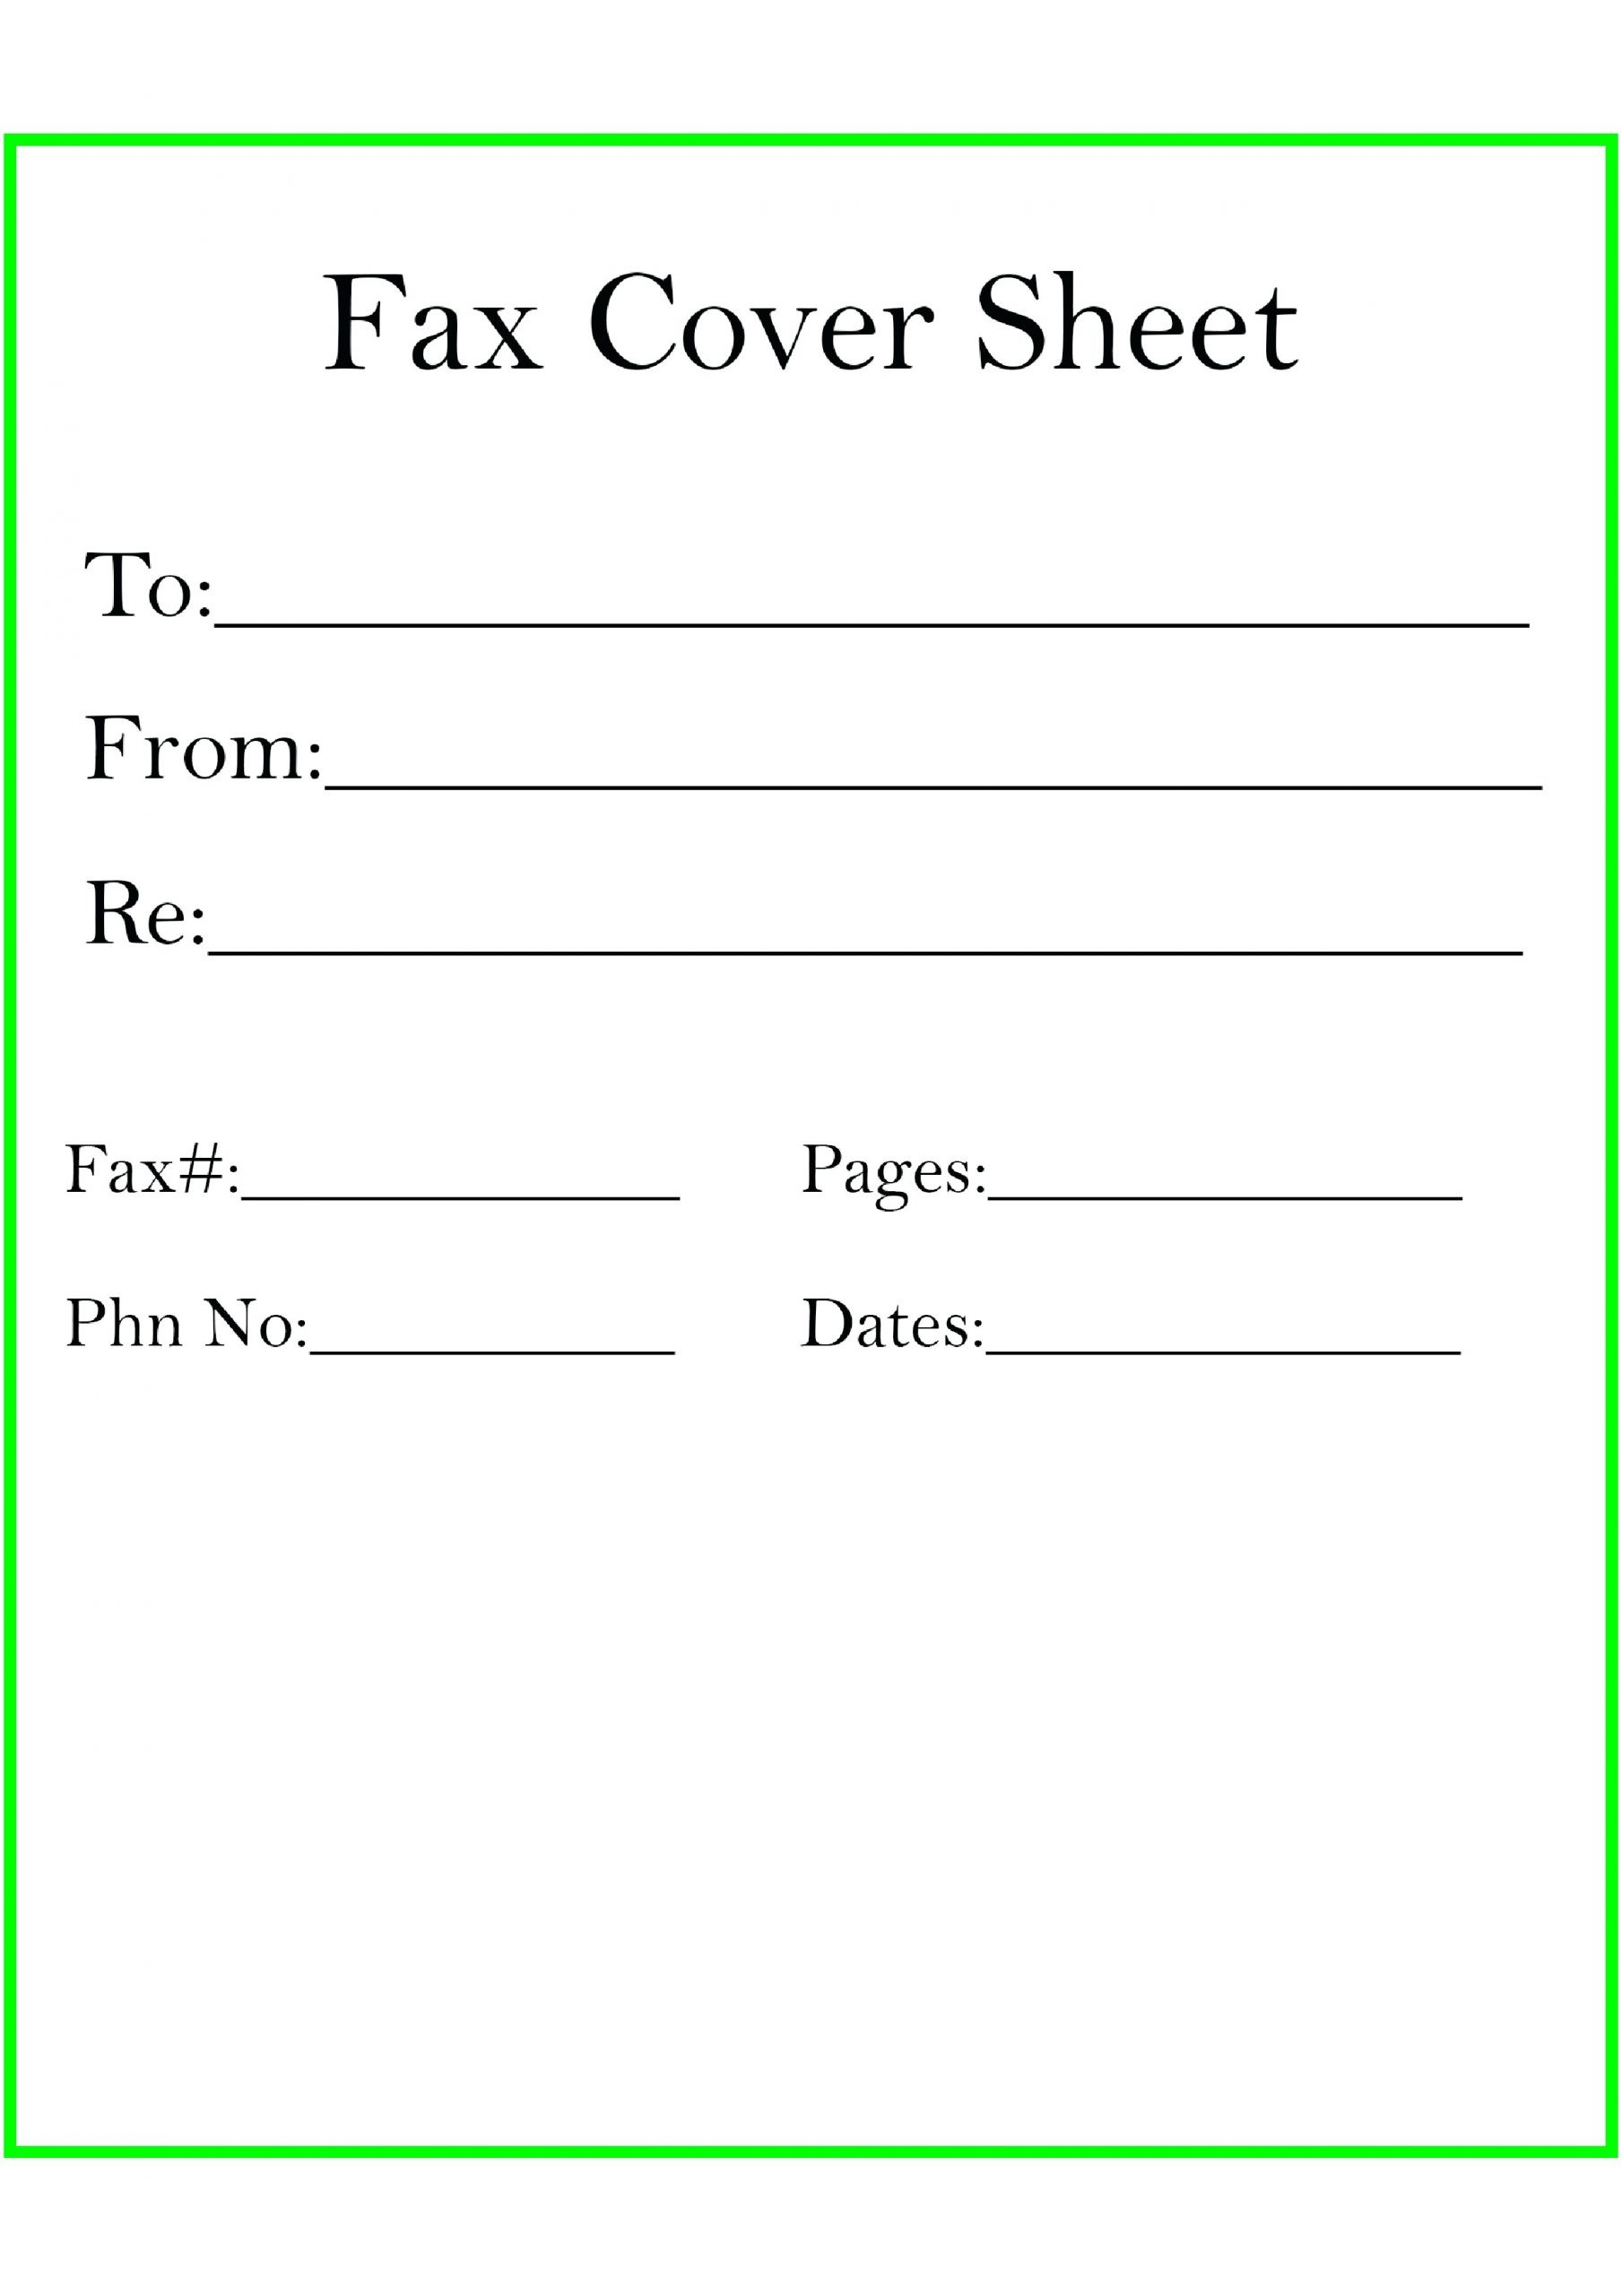 free fax cover sheet 23